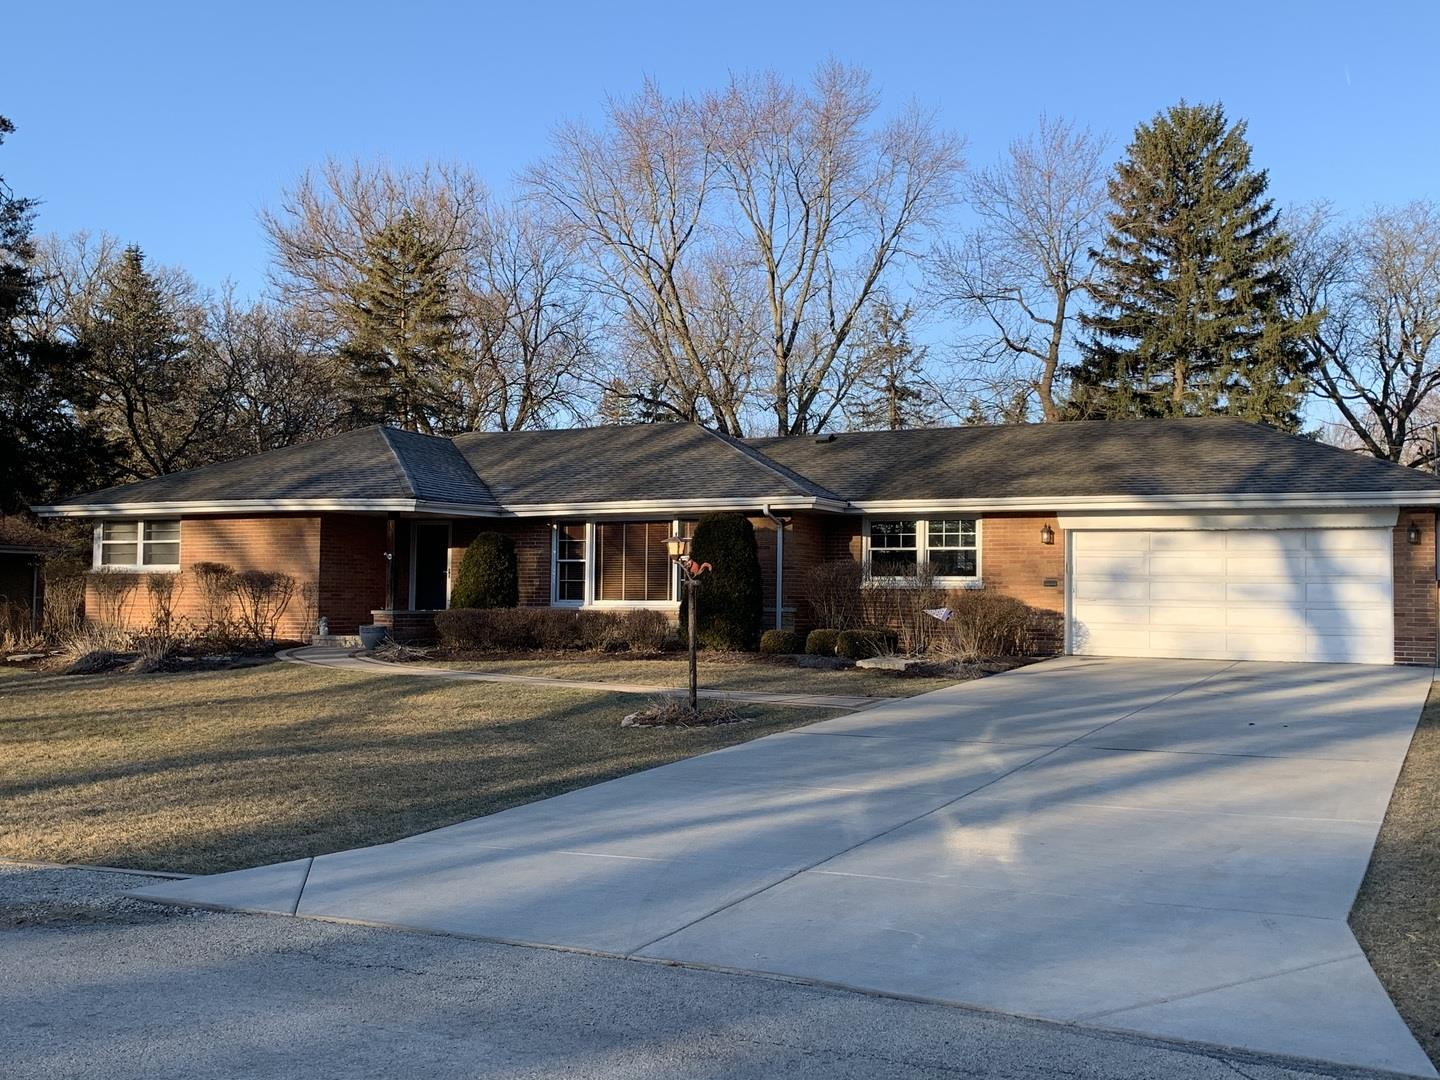 12122 S 70th Court, Palos Heights, IL 60463 - #: 10652013